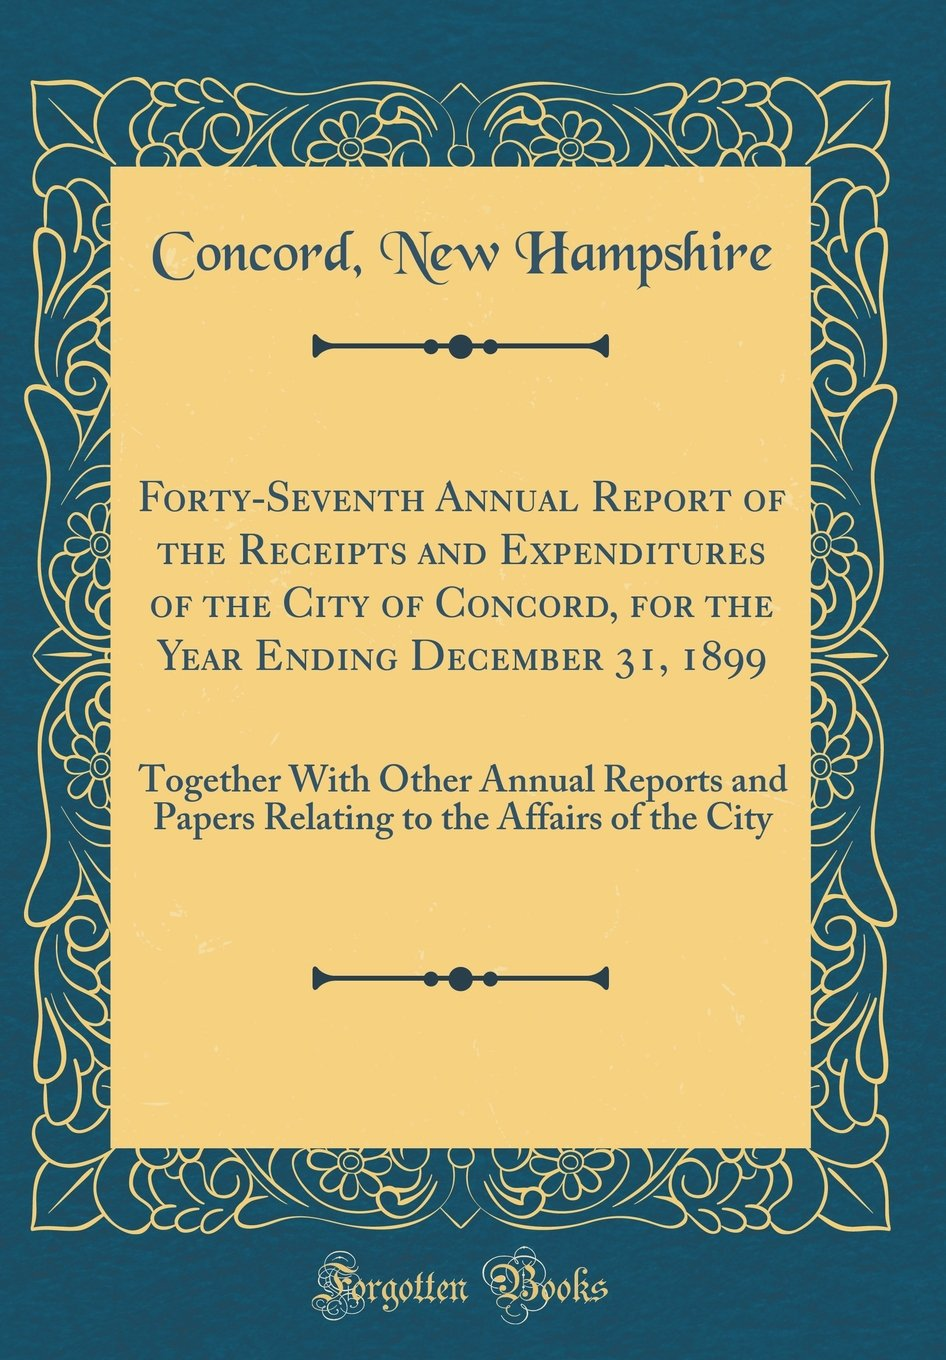 Download Forty-Seventh Annual Report of the Receipts and Expenditures of the City of Concord, for the Year Ending December 31, 1899: Together With Other Annual ... to the Affairs of the City (Classic Reprint) PDF